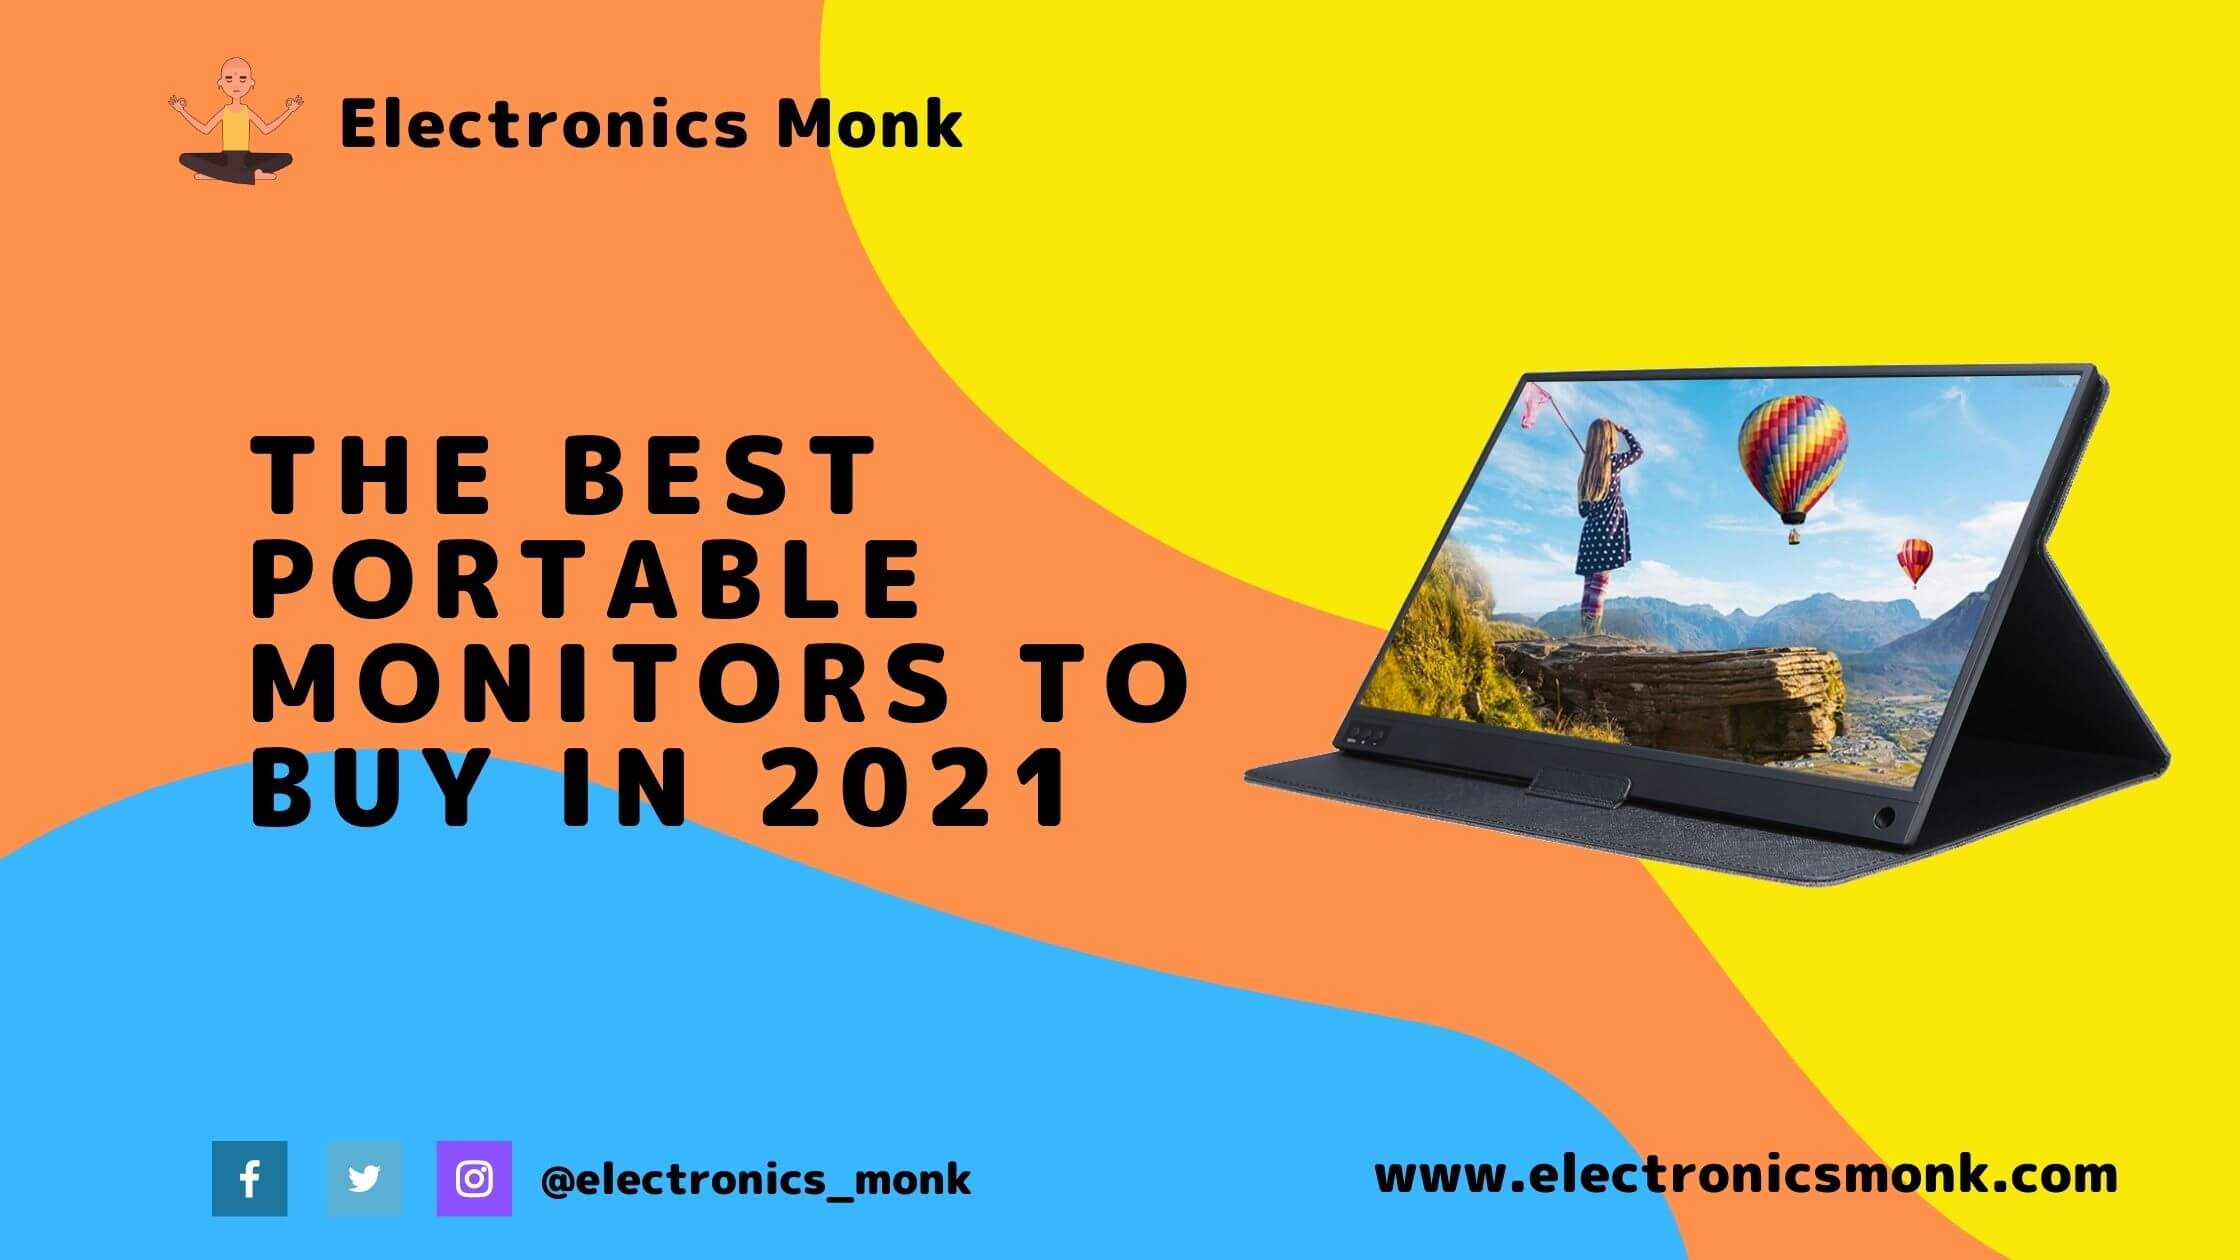 The Best Portable Monitors to Buy in 2021